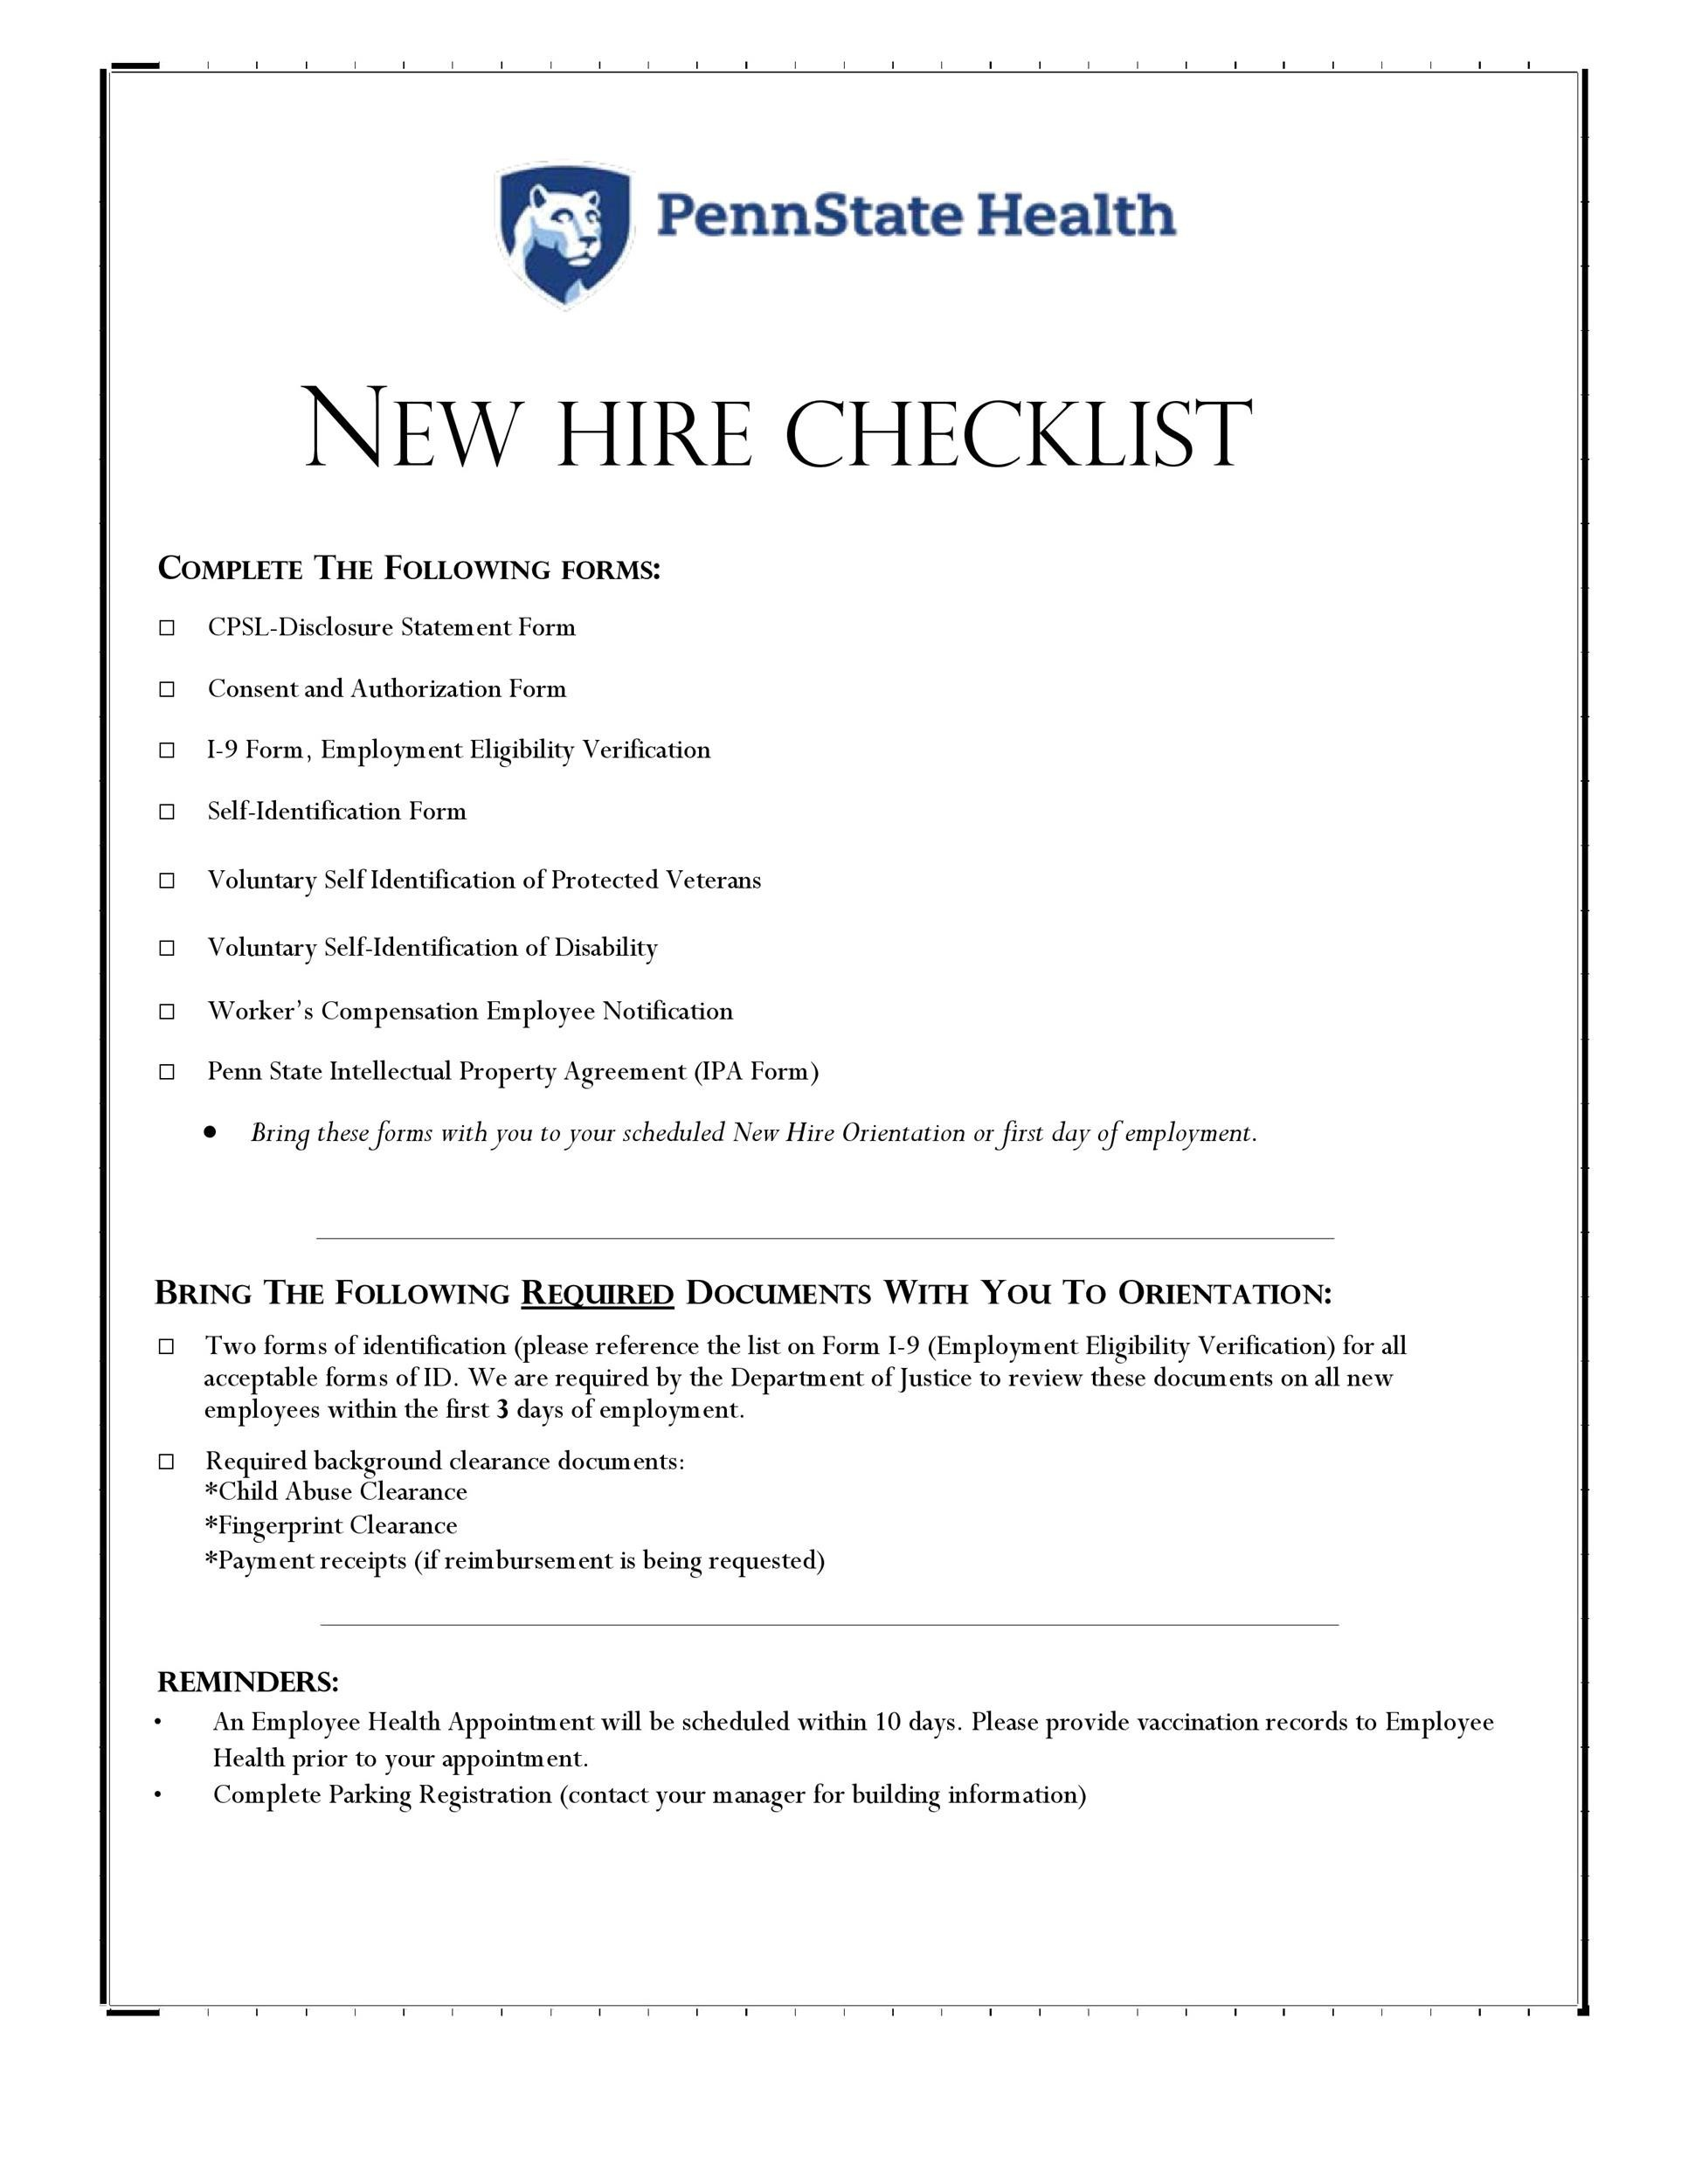 Free new hire checklist 06